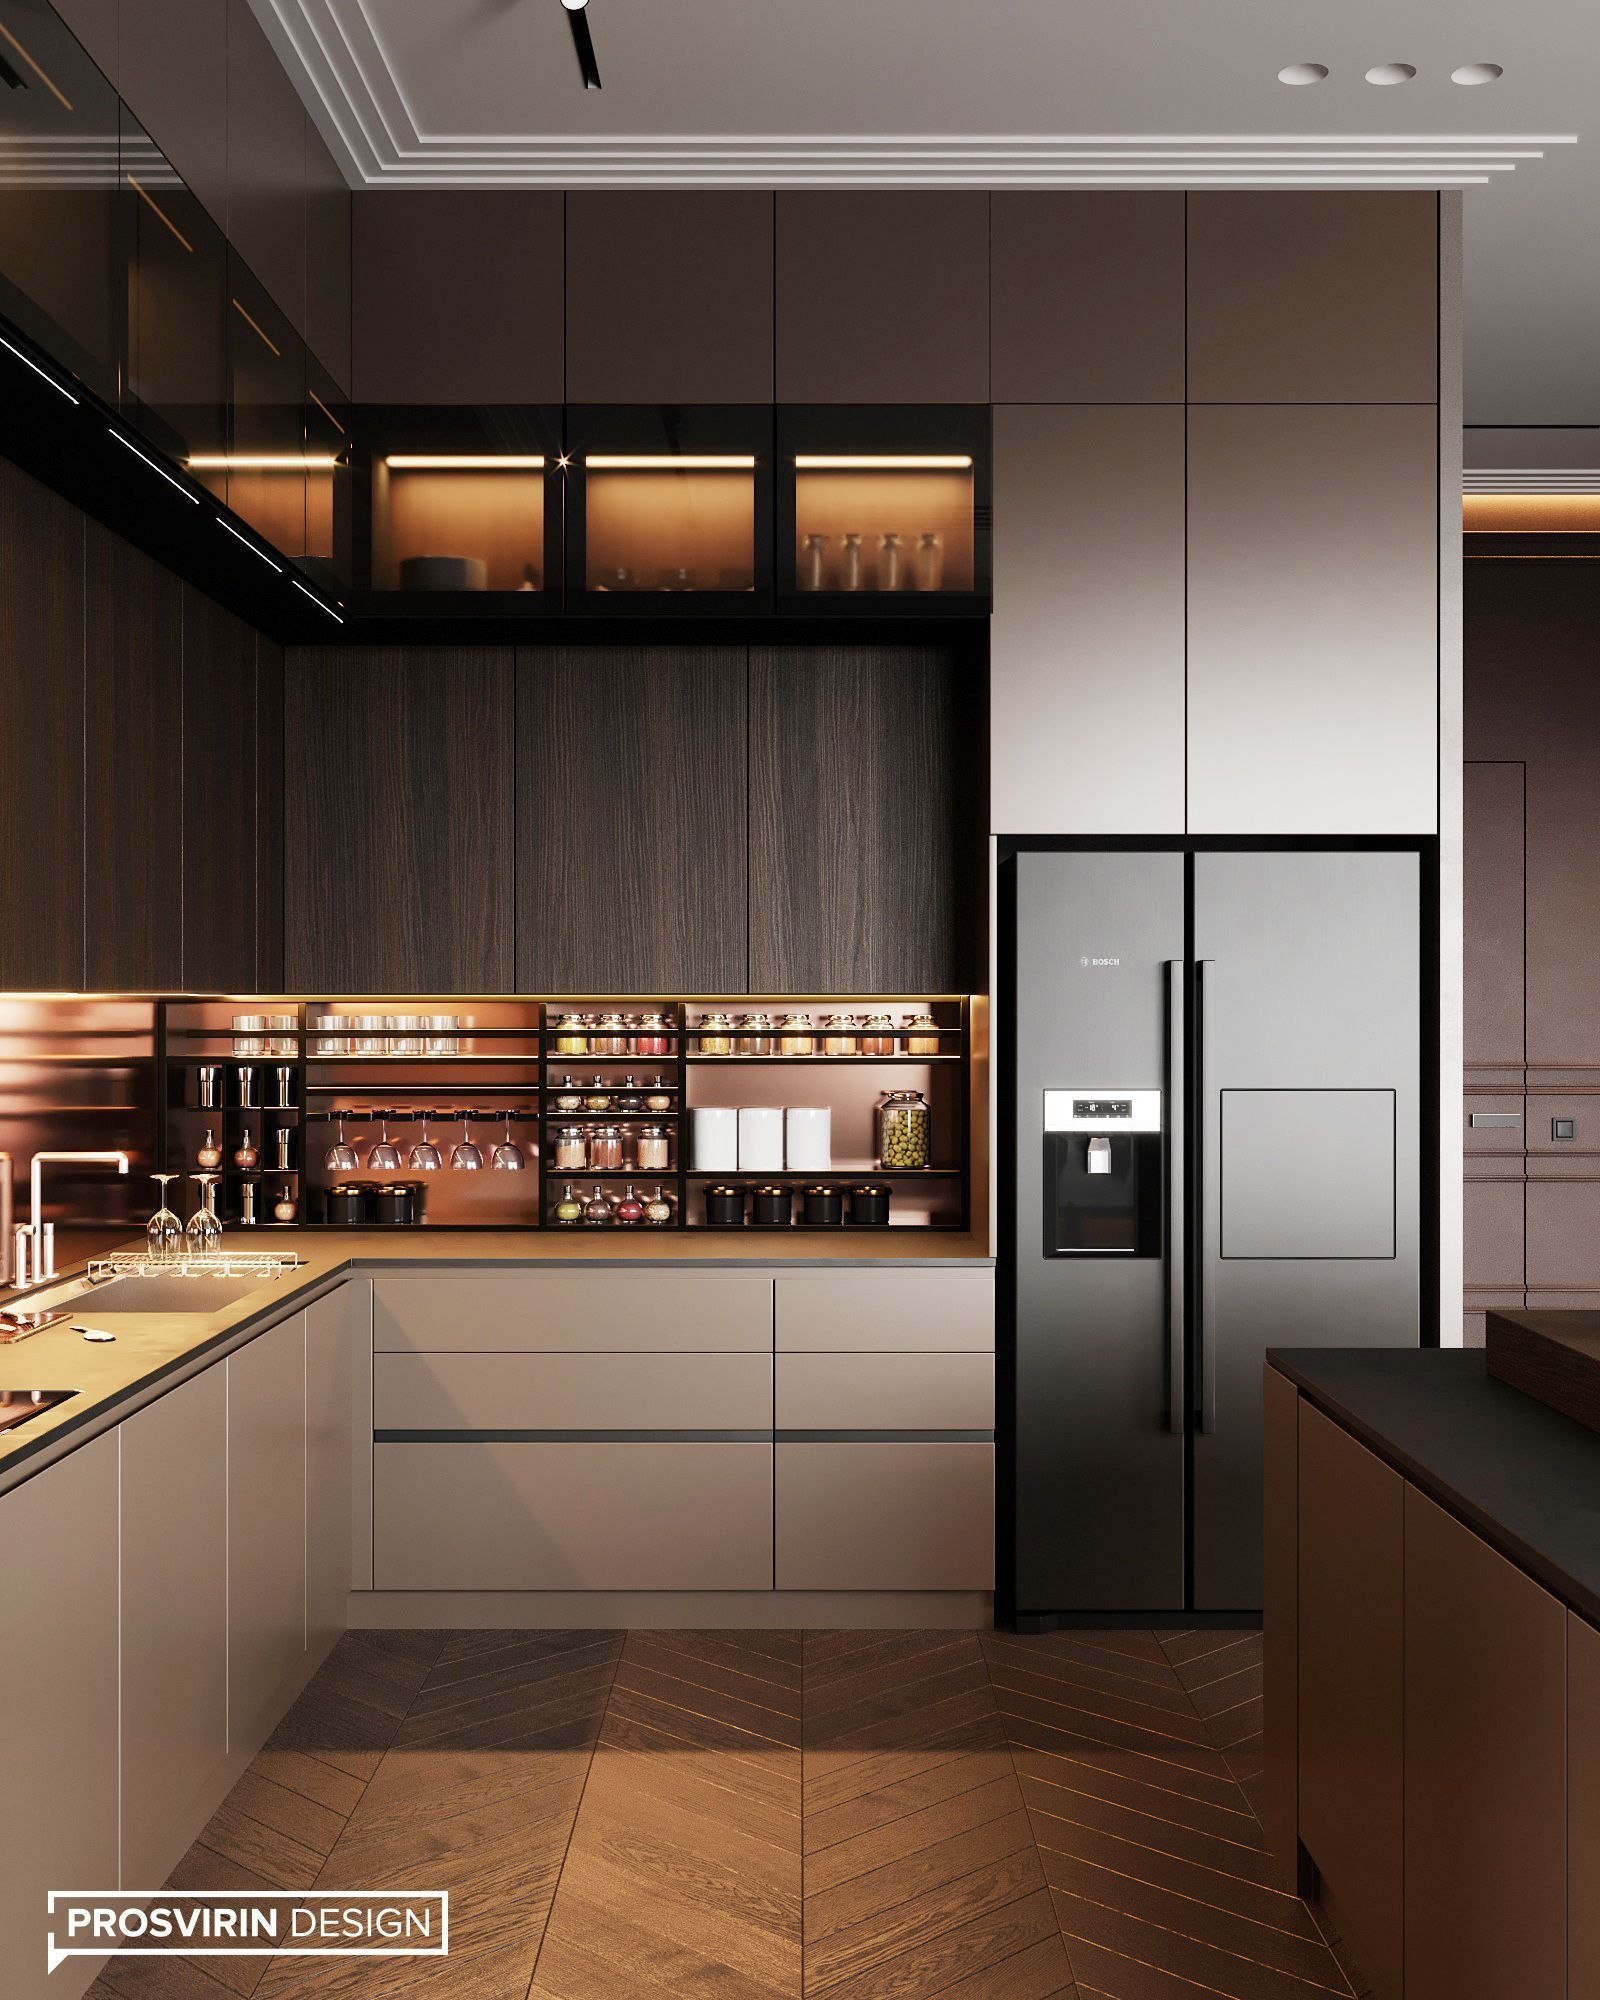 Contemporary Kitchen Design Benefits And Types Of Contemporary Kitchen Contemporary Kitchen D Kitchen Room Design Contemporary Kitchen Design Kitchen Design